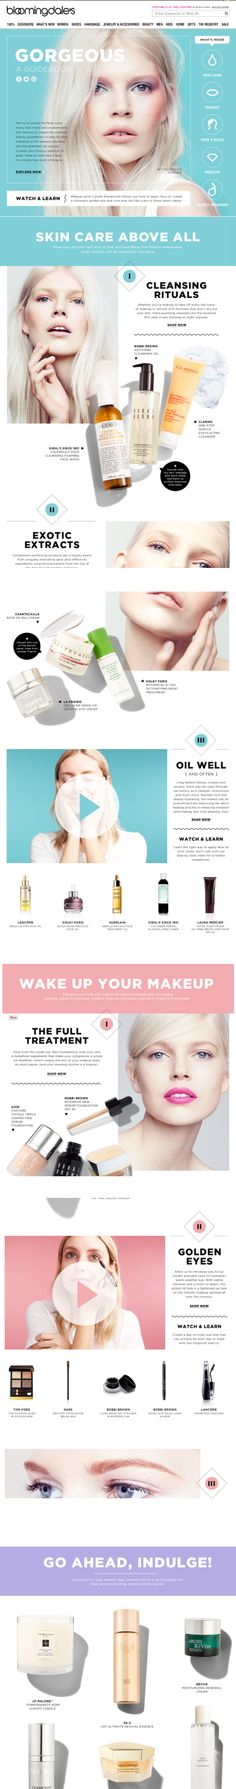 beauty guide. fun colors, images, and type